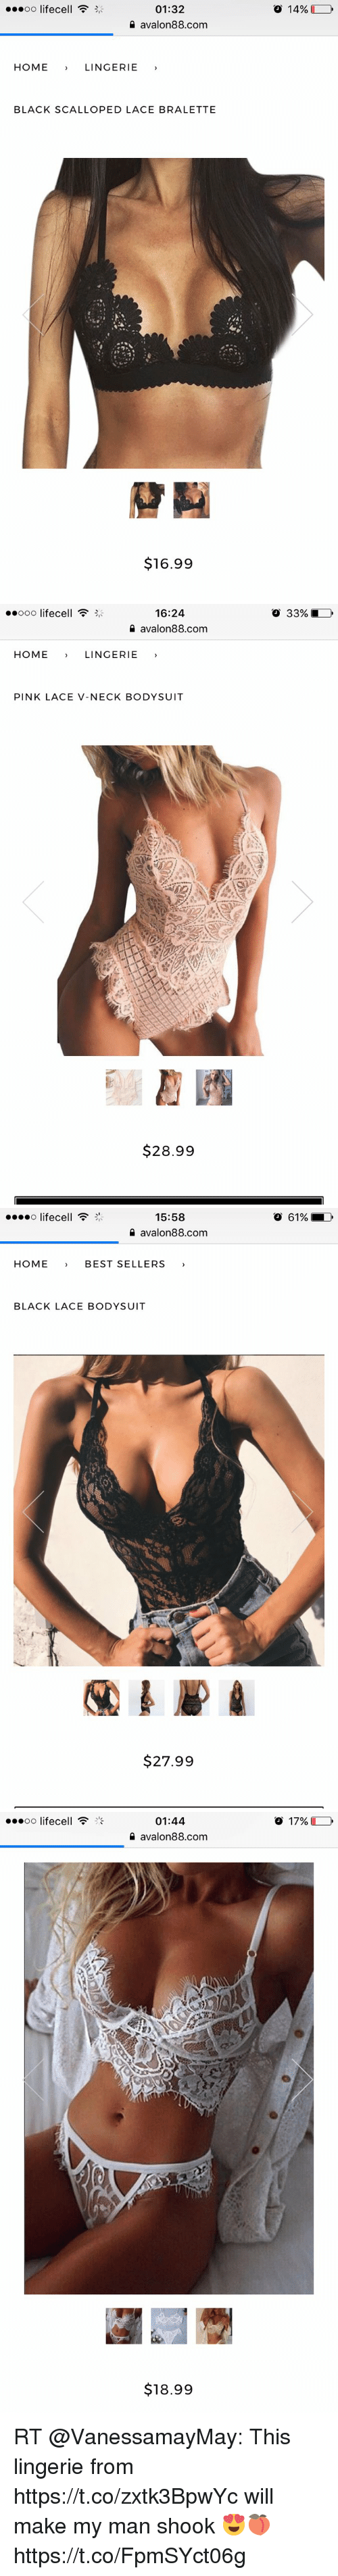 "Memes, Best, and Black: O 14%  01:32  avalon88.com  HOME  LINGERIE  BLACK SCALLOPED LACE BRALETTE  $16.99   16:24  avalon88.com  o 33%  HOMELINGERIE  PINK LACE V-NECK BODYSUIT  $28.99   15:58  1 avalon88.com  o lifecell ""  o 61%  HOME BEST SELLERS  BLACK LACE BODYSUIT  $27.99   ..oo lifecell  01:44  1 avalon88.com  17%  $18.99 RT @VanessamayMay: This lingerie from https://t.co/zxtk3BpwYc will make my man shook 😍🍑 https://t.co/FpmSYct06g"